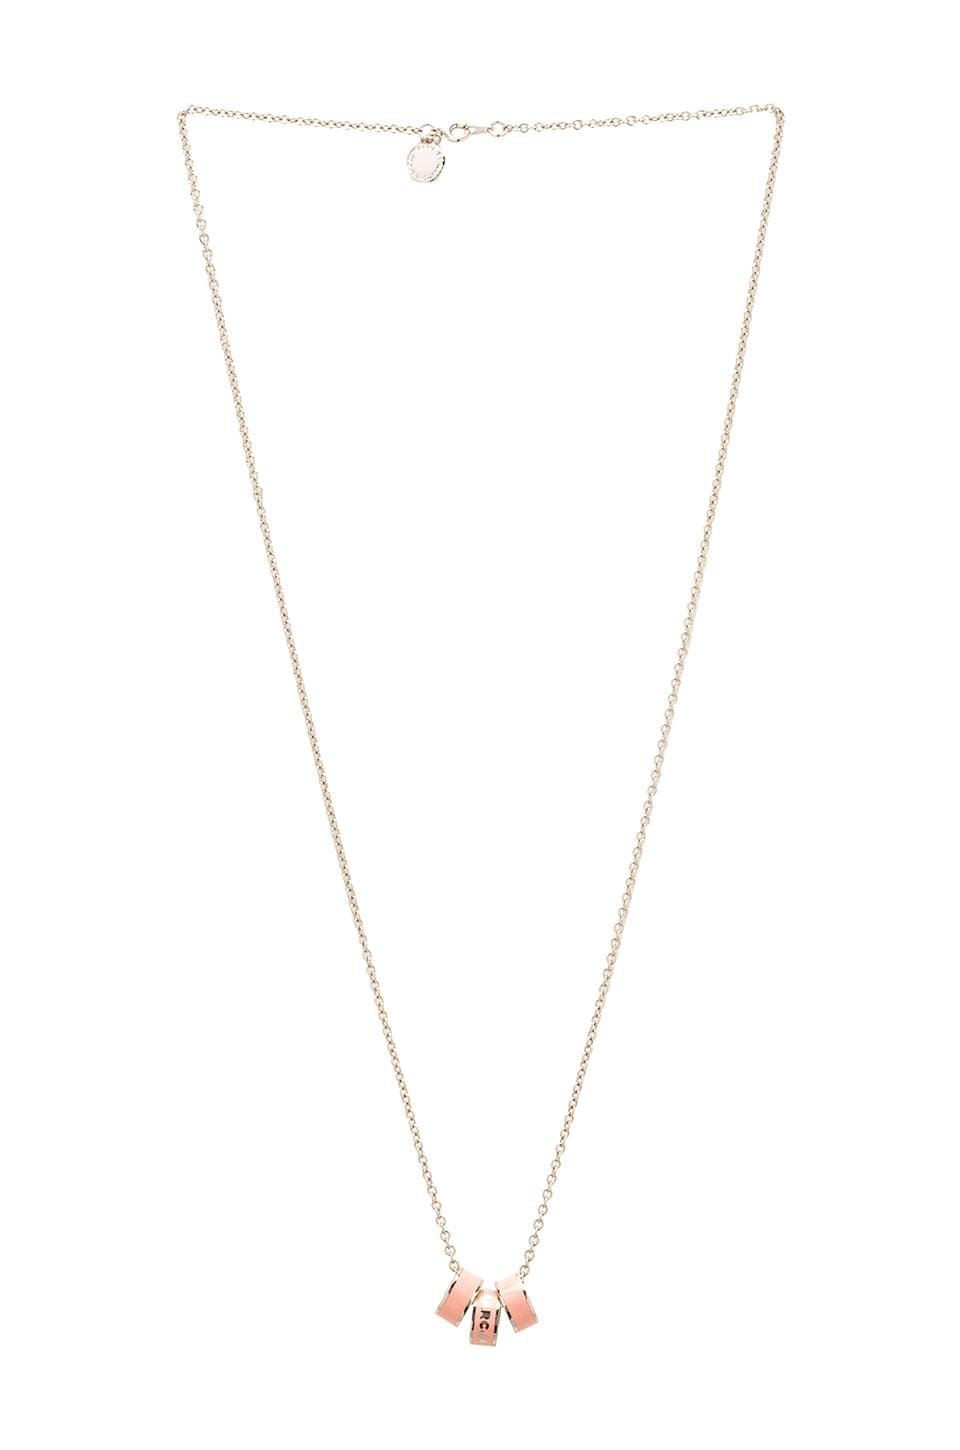 Marc by Marc Jacobs Sweetie Rings Necklace in Rouge (Argento)